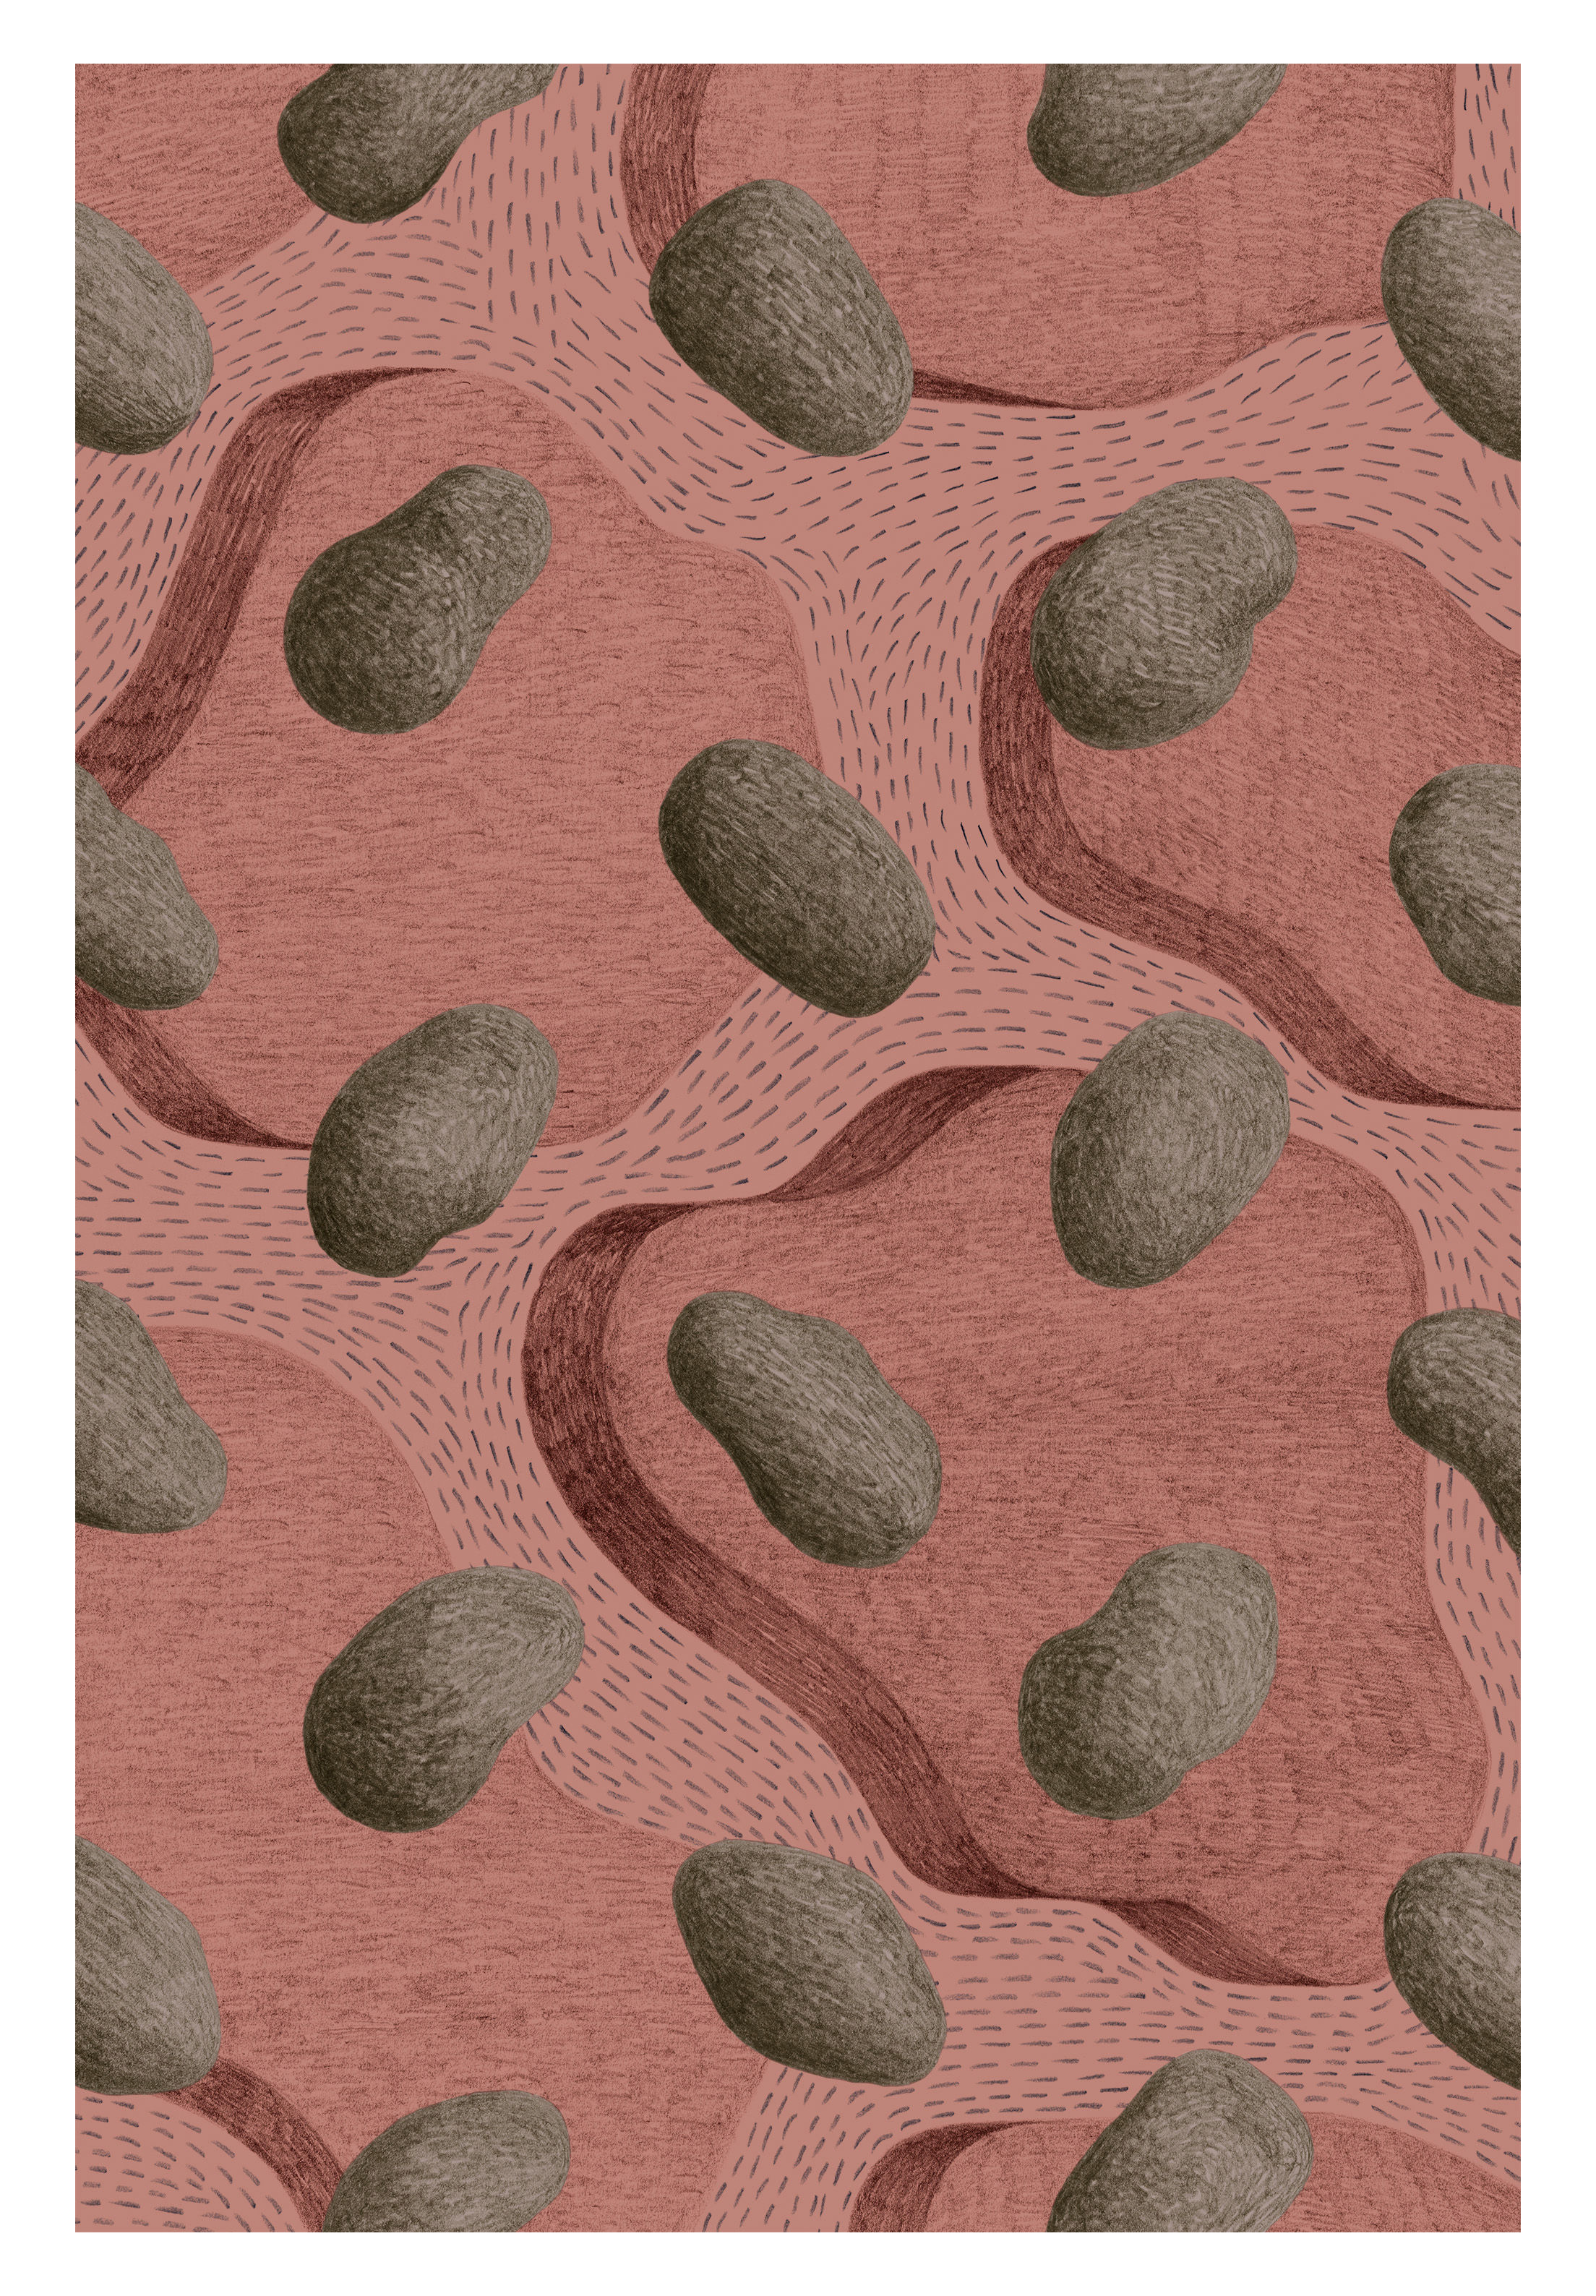 Decoration - Rugs - Archipel Rug - / 200 x 300 cm - 20 years of MID limited edition by Made in design Editions - Archipel - Polyamide